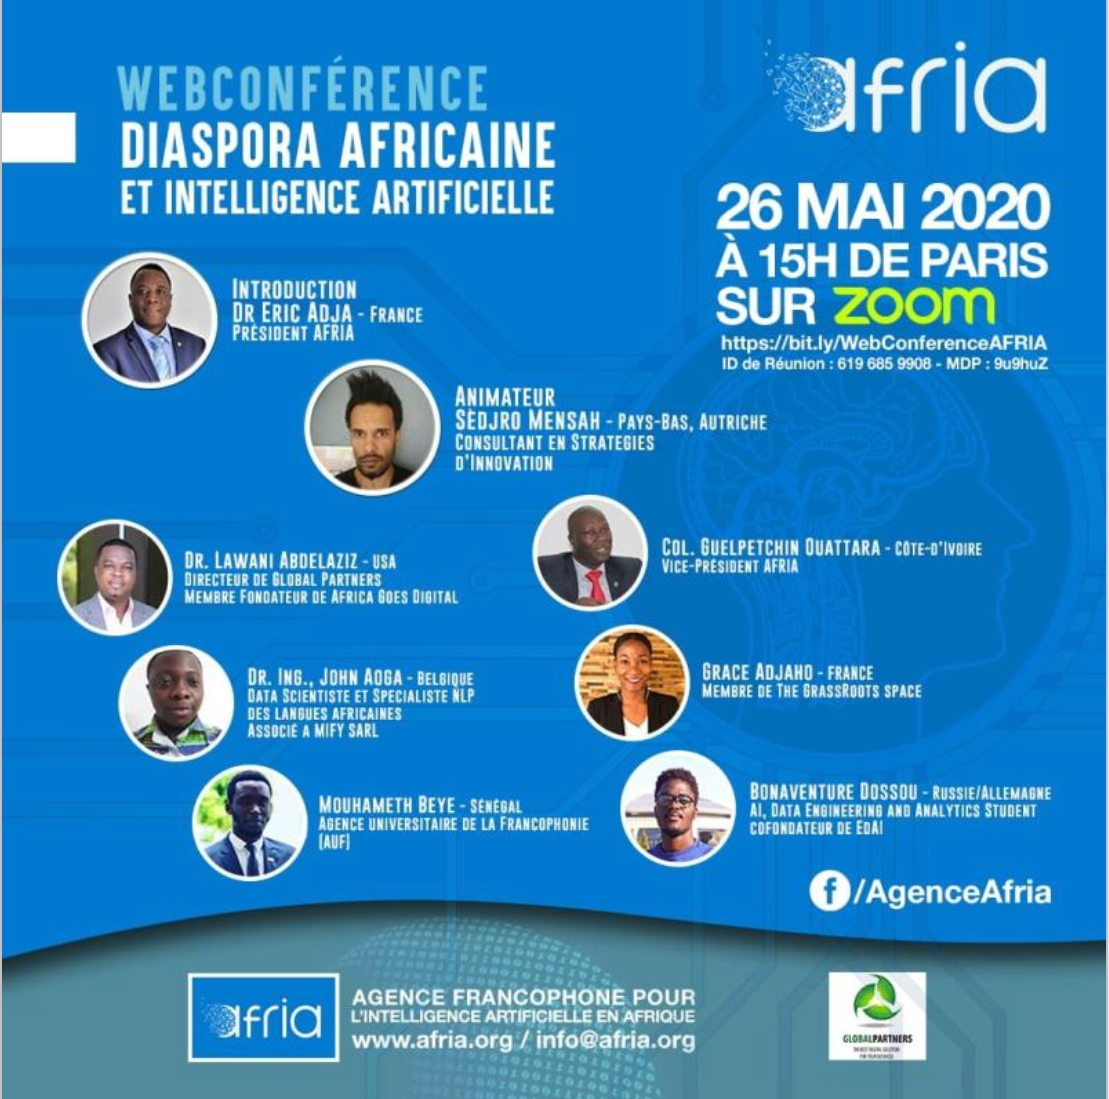 Webconference | Diaspora Africaine et Intelligence Artificielle | FR